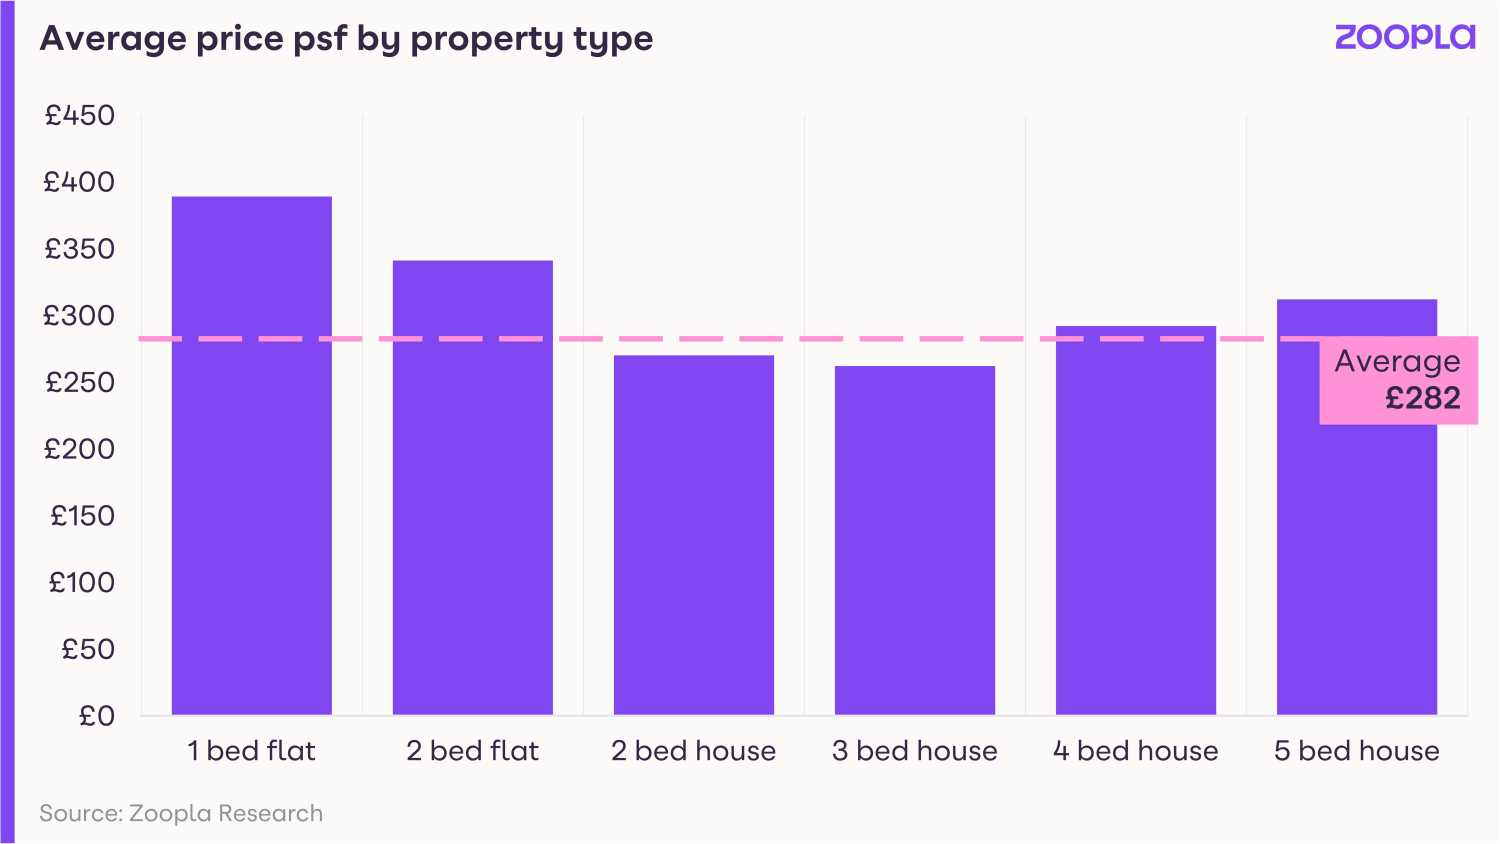 Graph shows average price per sq ft by property type